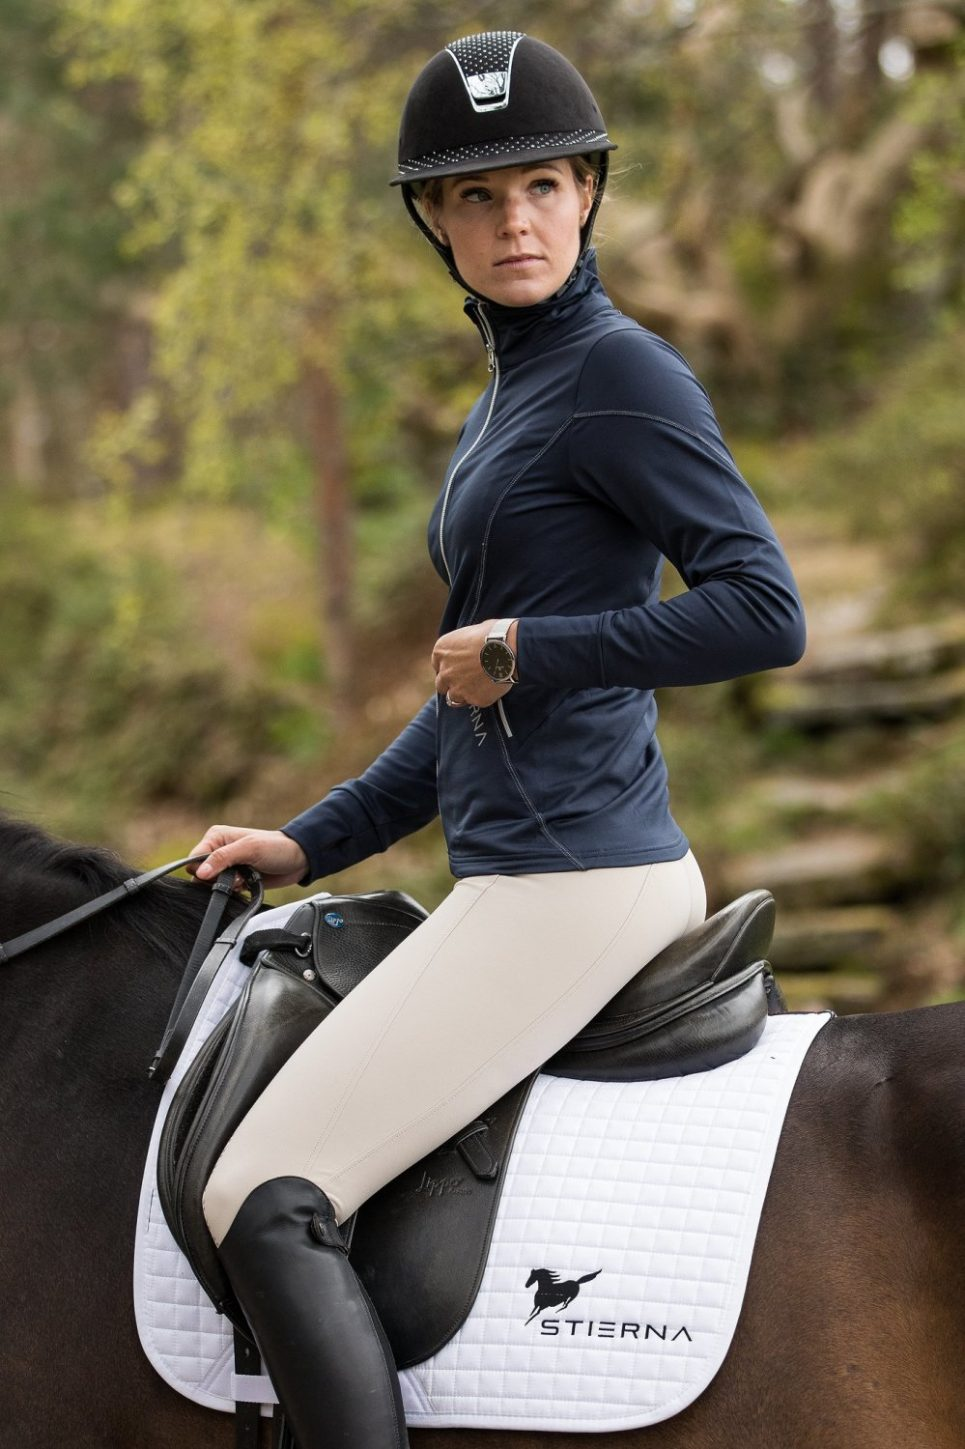 stierna fleece riding jacket